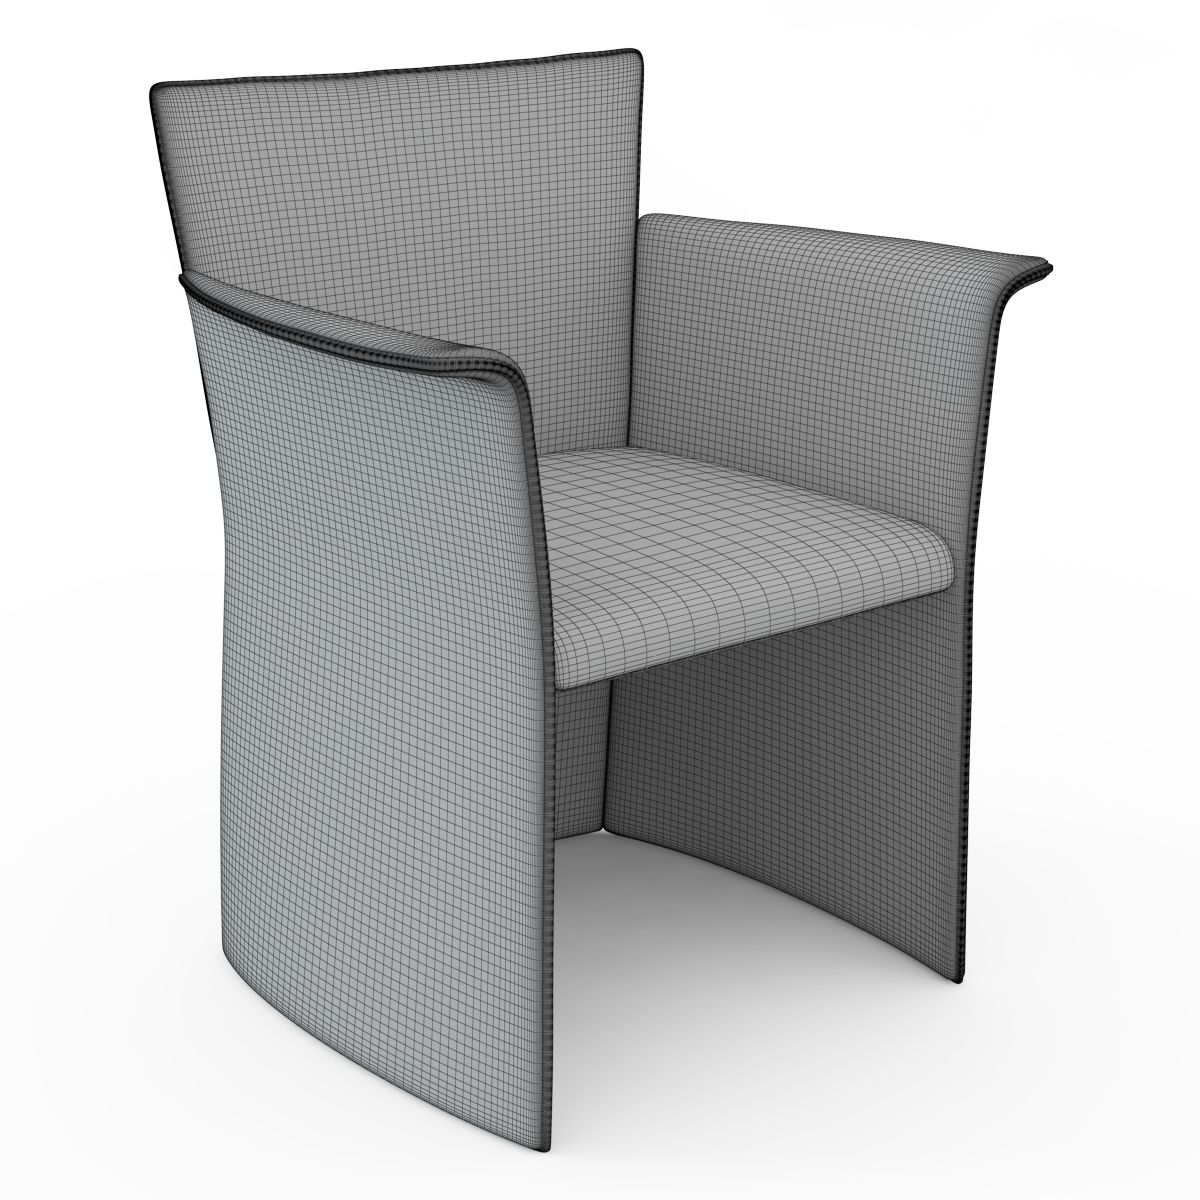 Klab Design Armchair Cleo (With images) Armchair design